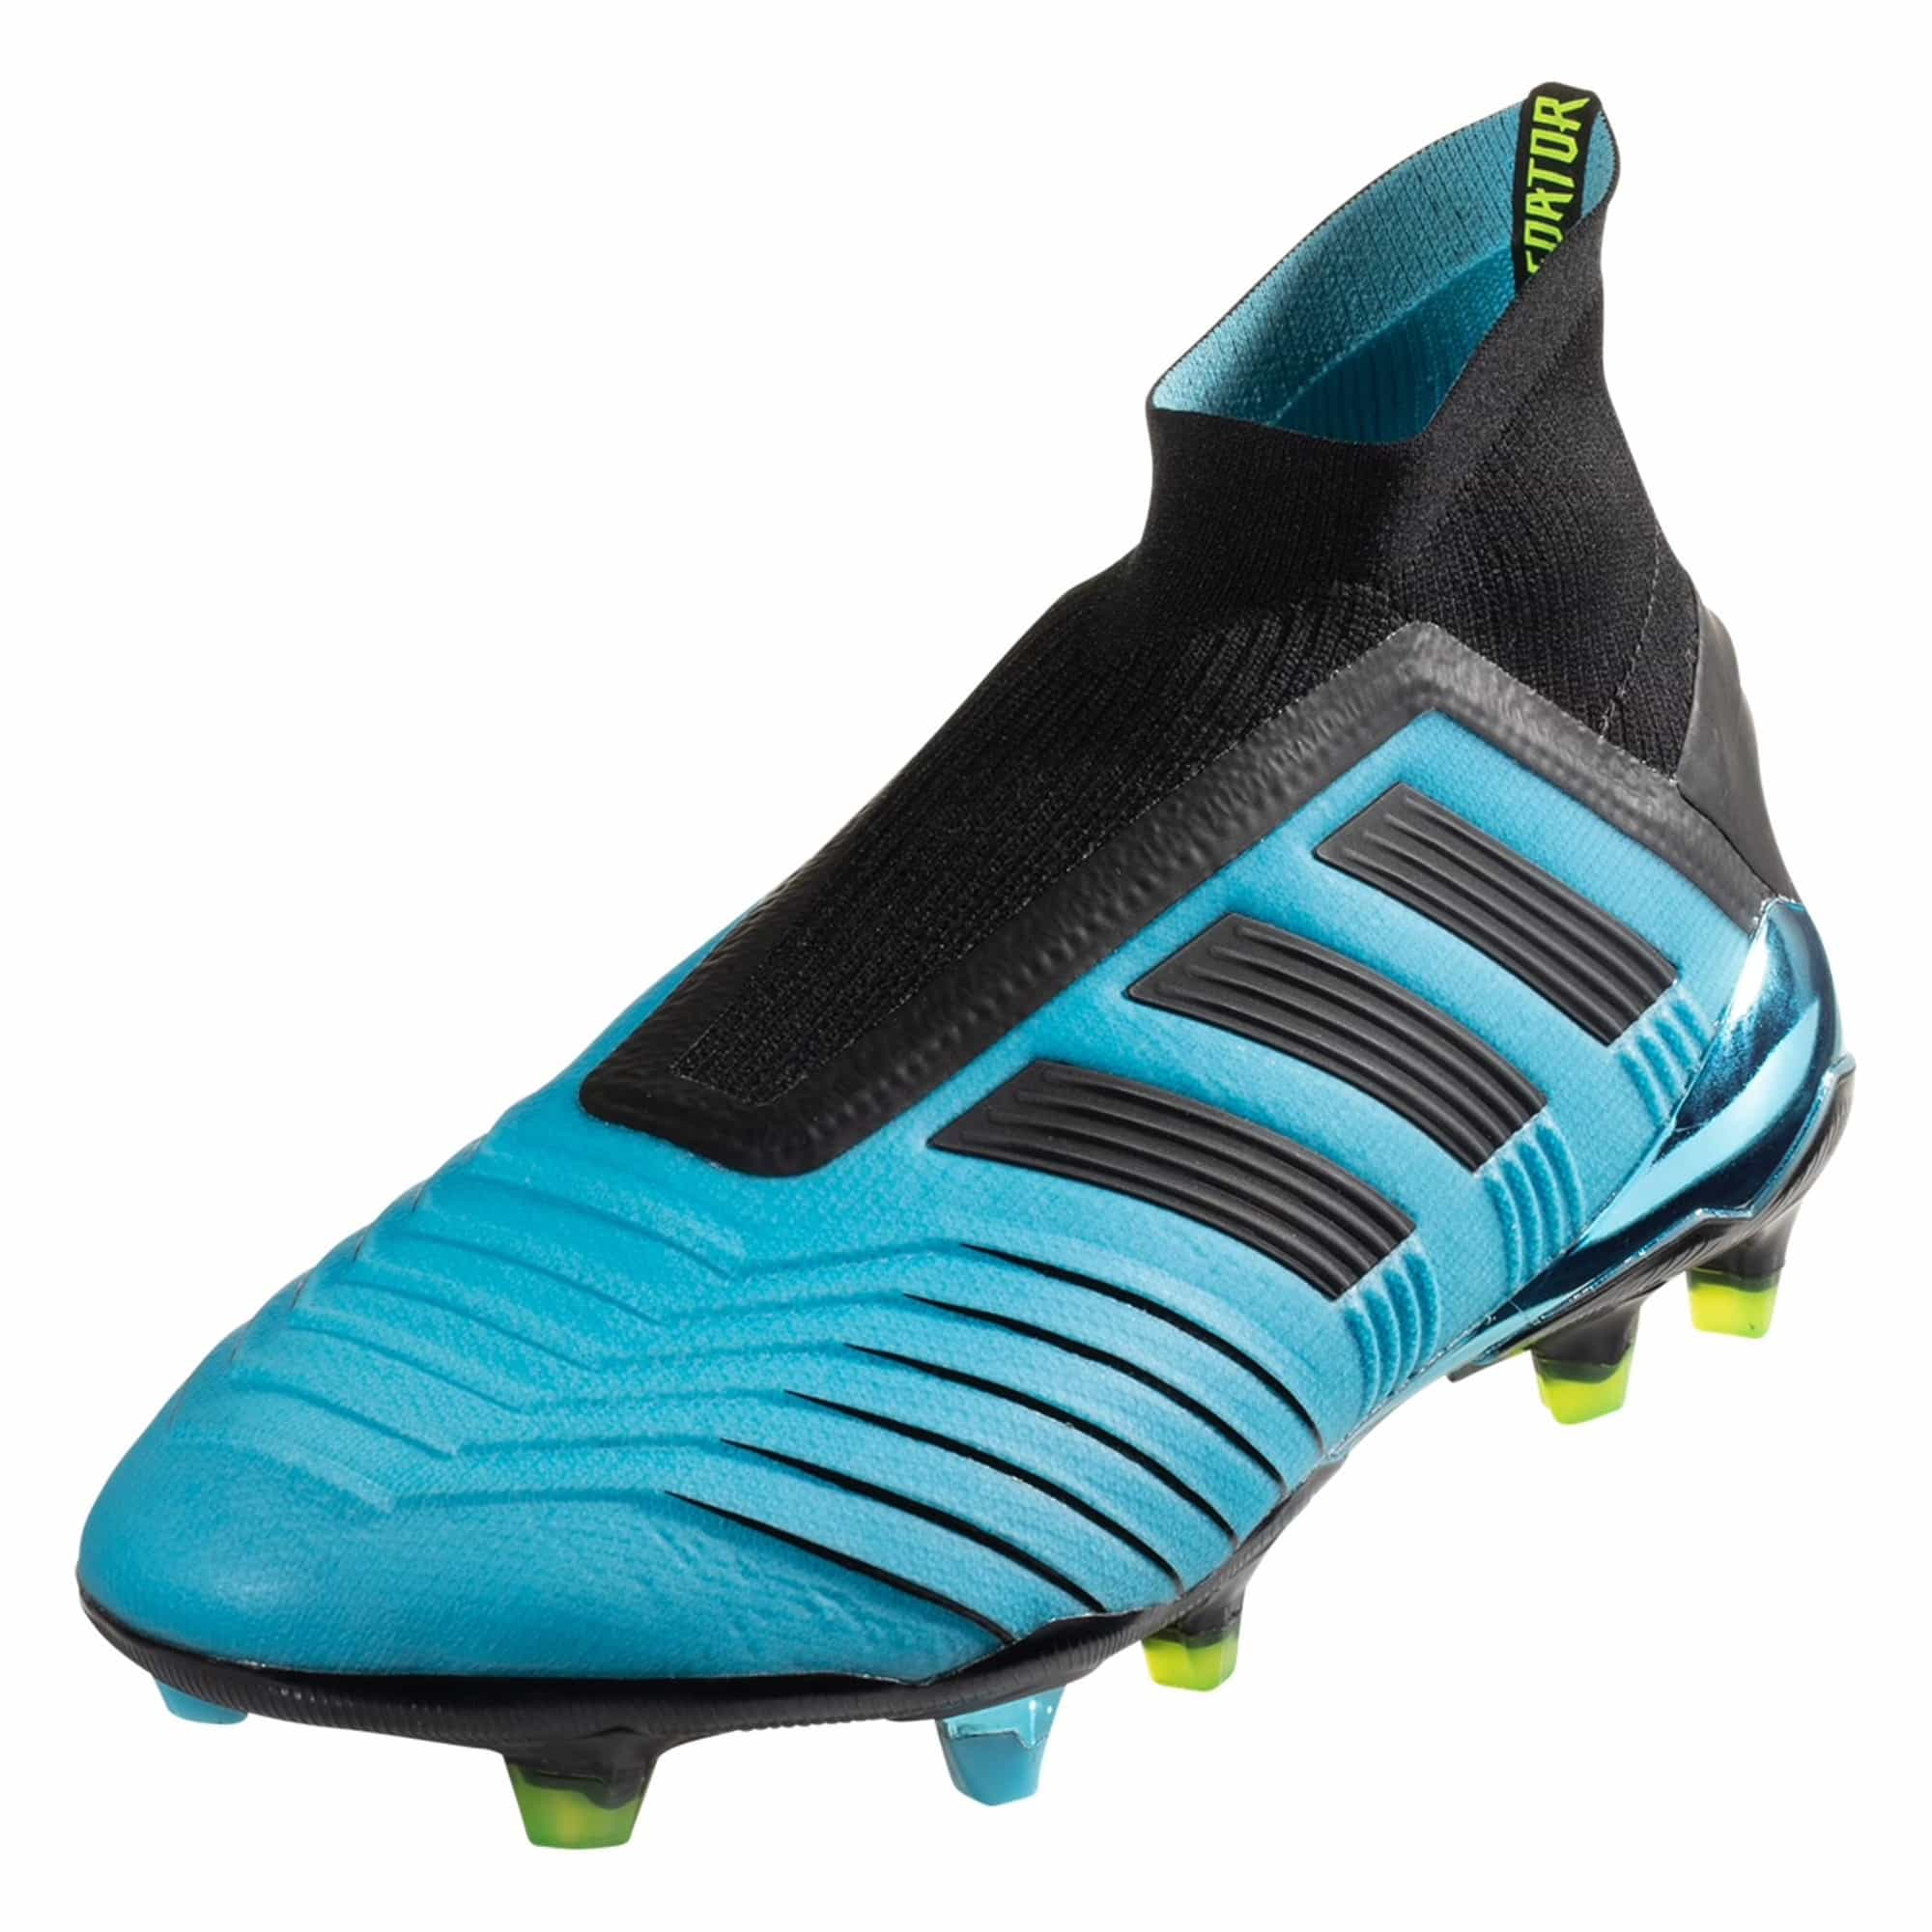 adidas Predator 19+ FG Soccer Cleat - Cyan / Black / Solar Yellow